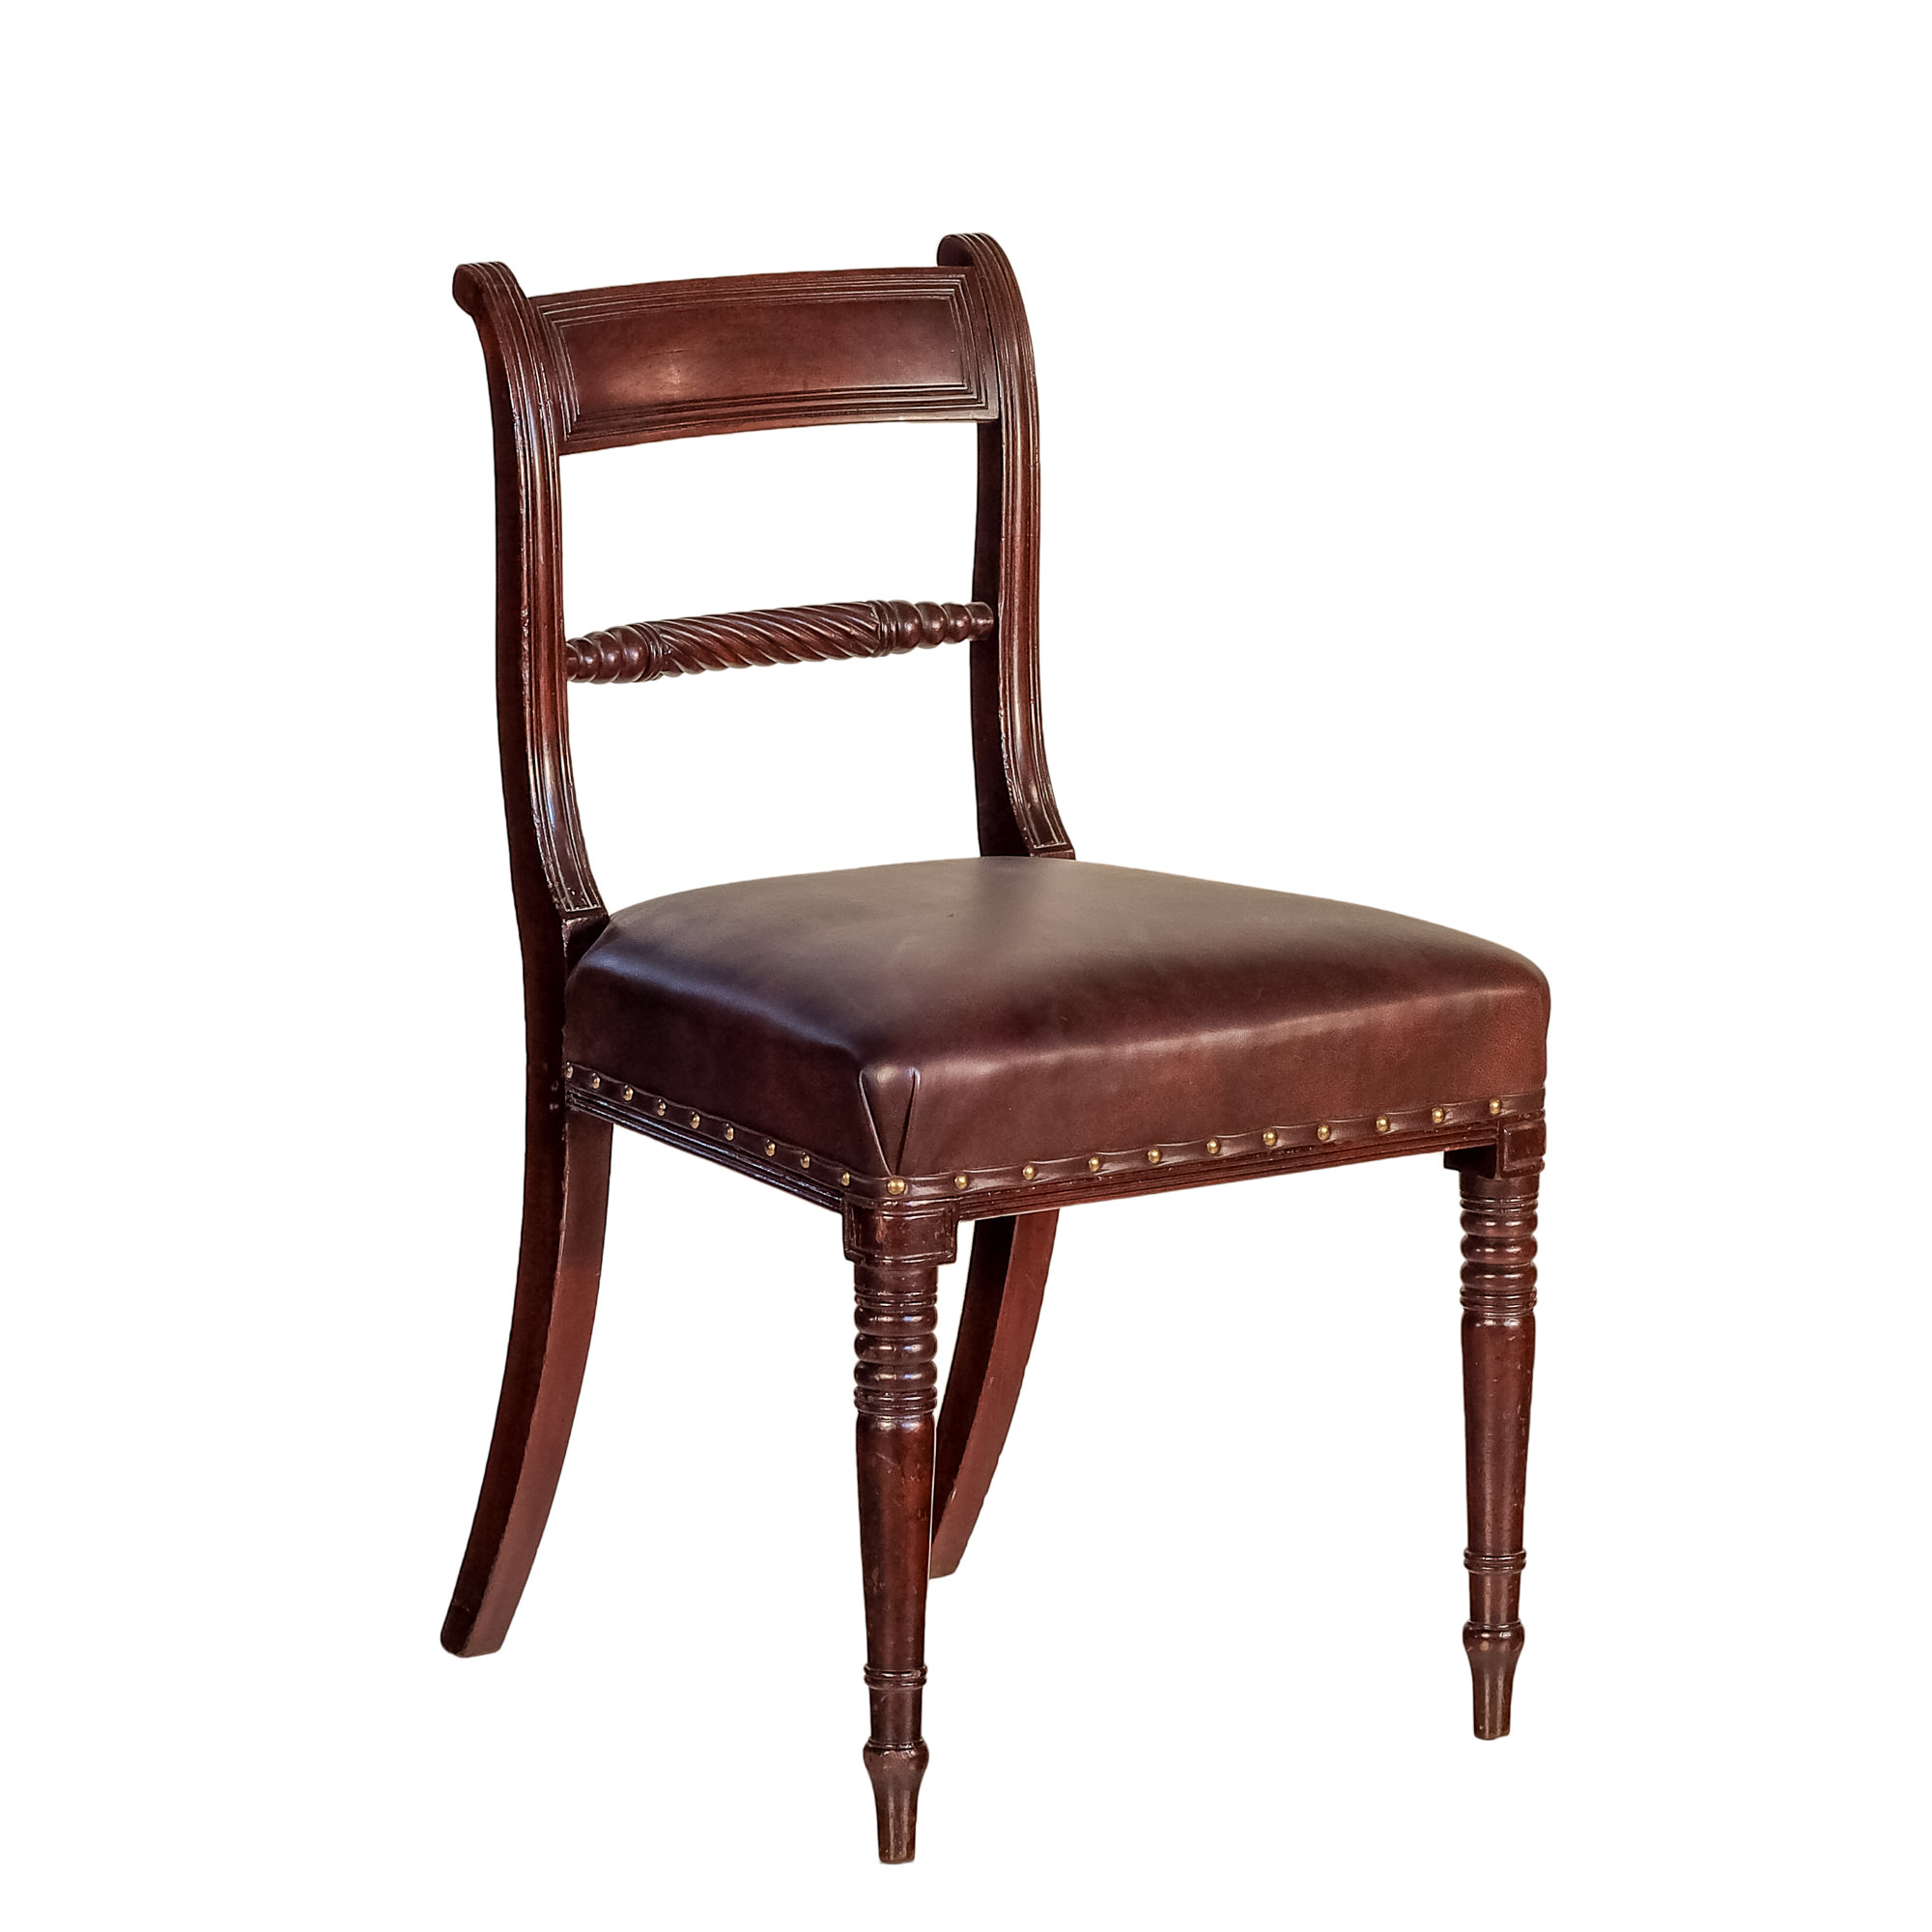 'Regency Period Mahogany Dining Chair with Brown Leather Upholstery Circa 1820'